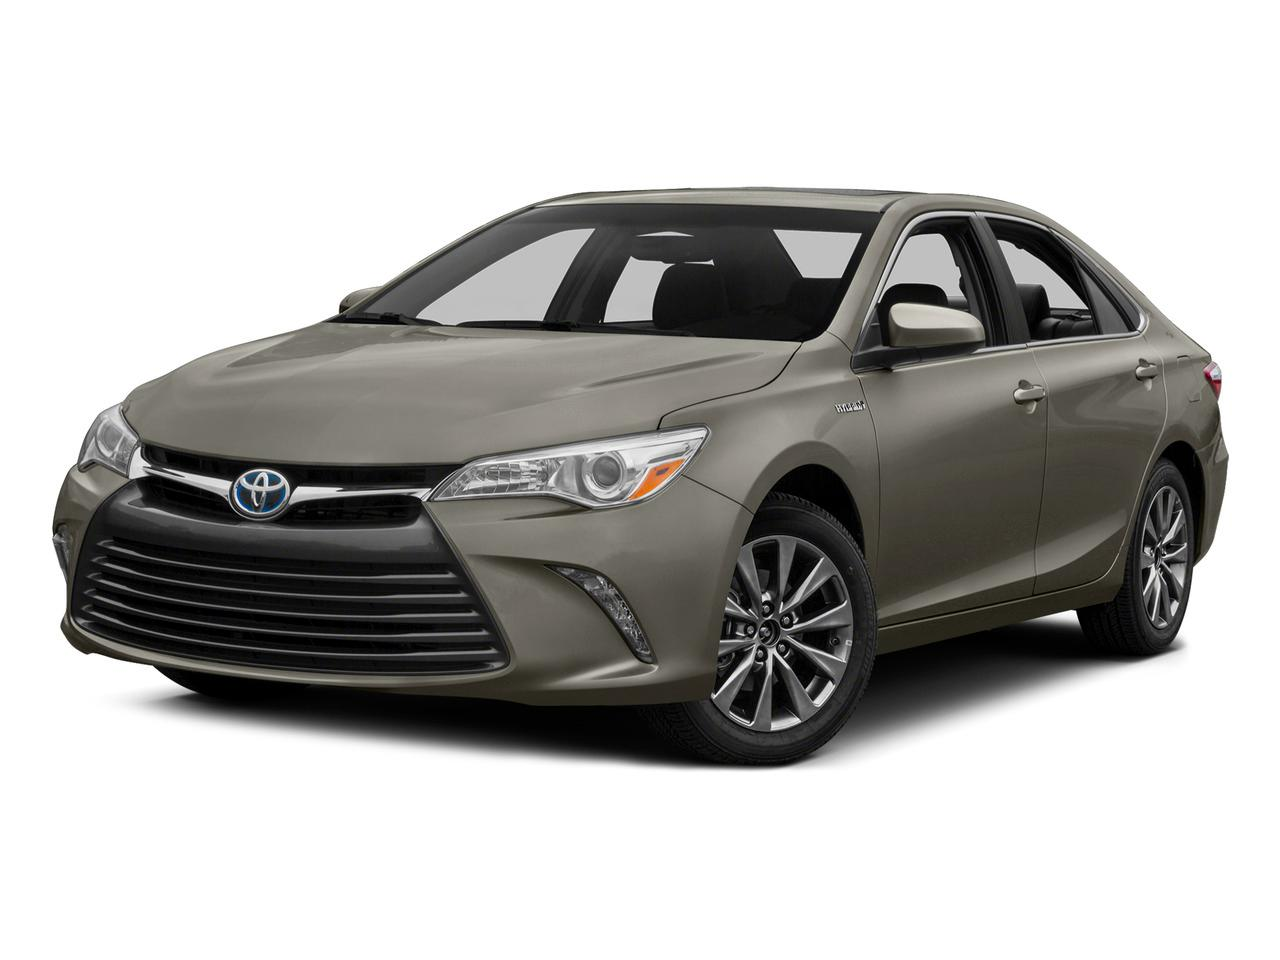 2015 Toyota Camry Hybrid Vehicle Photo in Owensboro, KY 42303